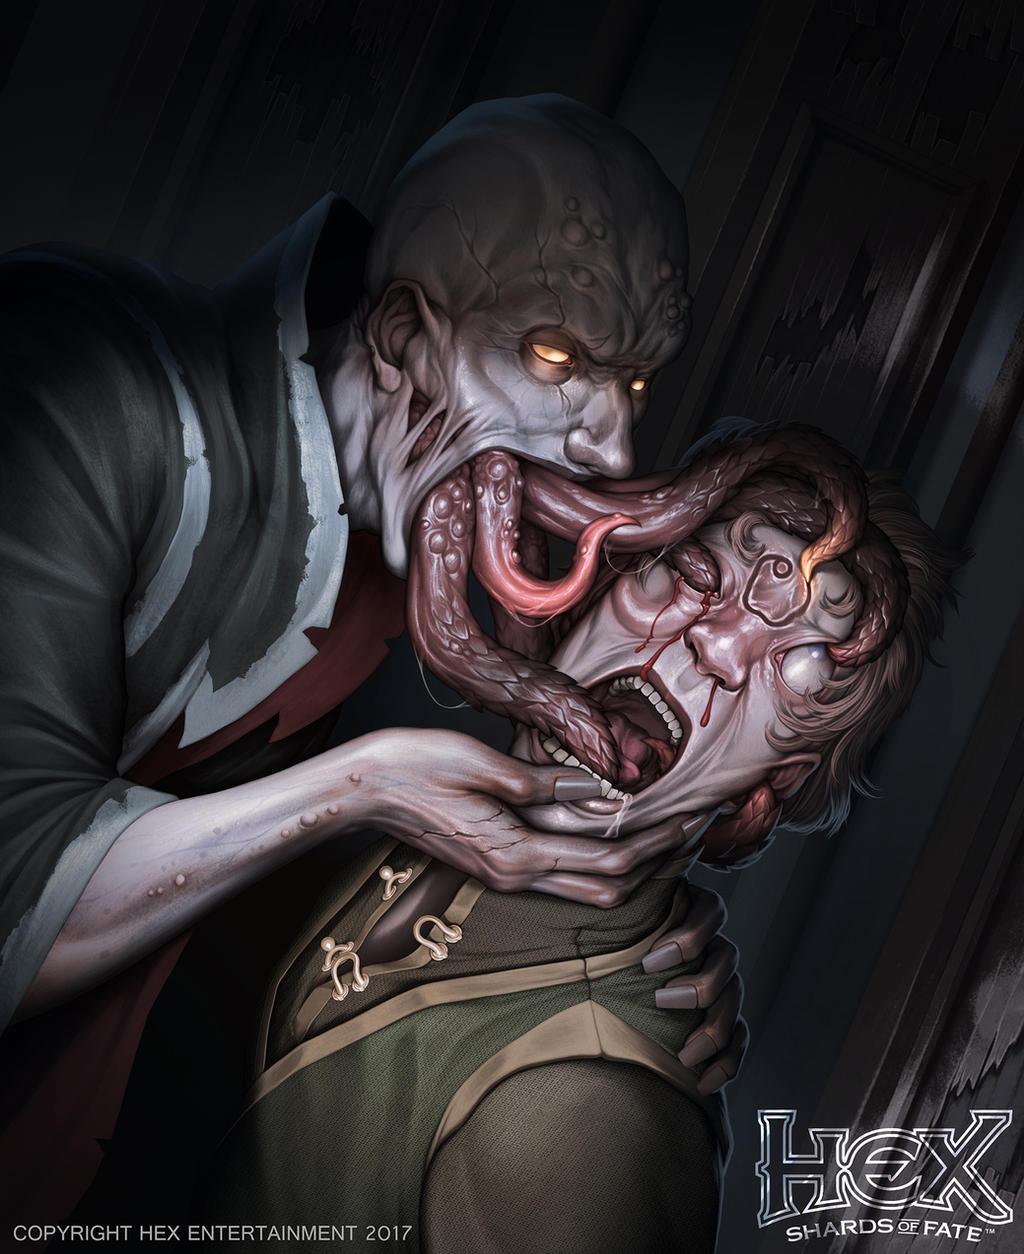 5e] Mind Flayer Alternative - Need some creative input for a